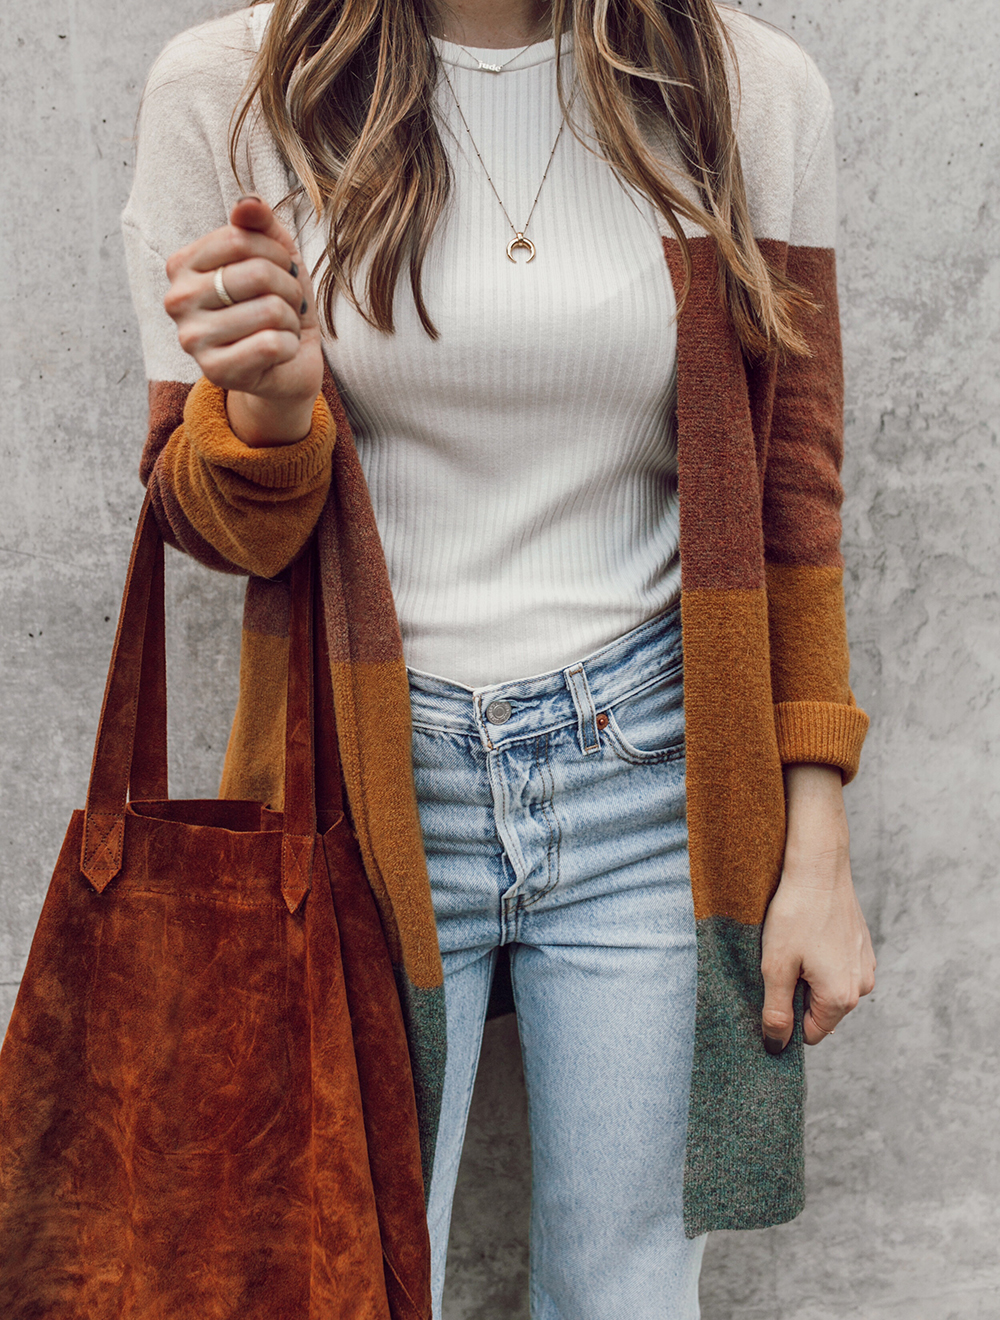 livvyland-blog-olivia-watson-austin-texas-fashion-lifestyle-blogger-nisolo-james-oxford-fall-outfit-idea-madewell-kent-cardigan-2